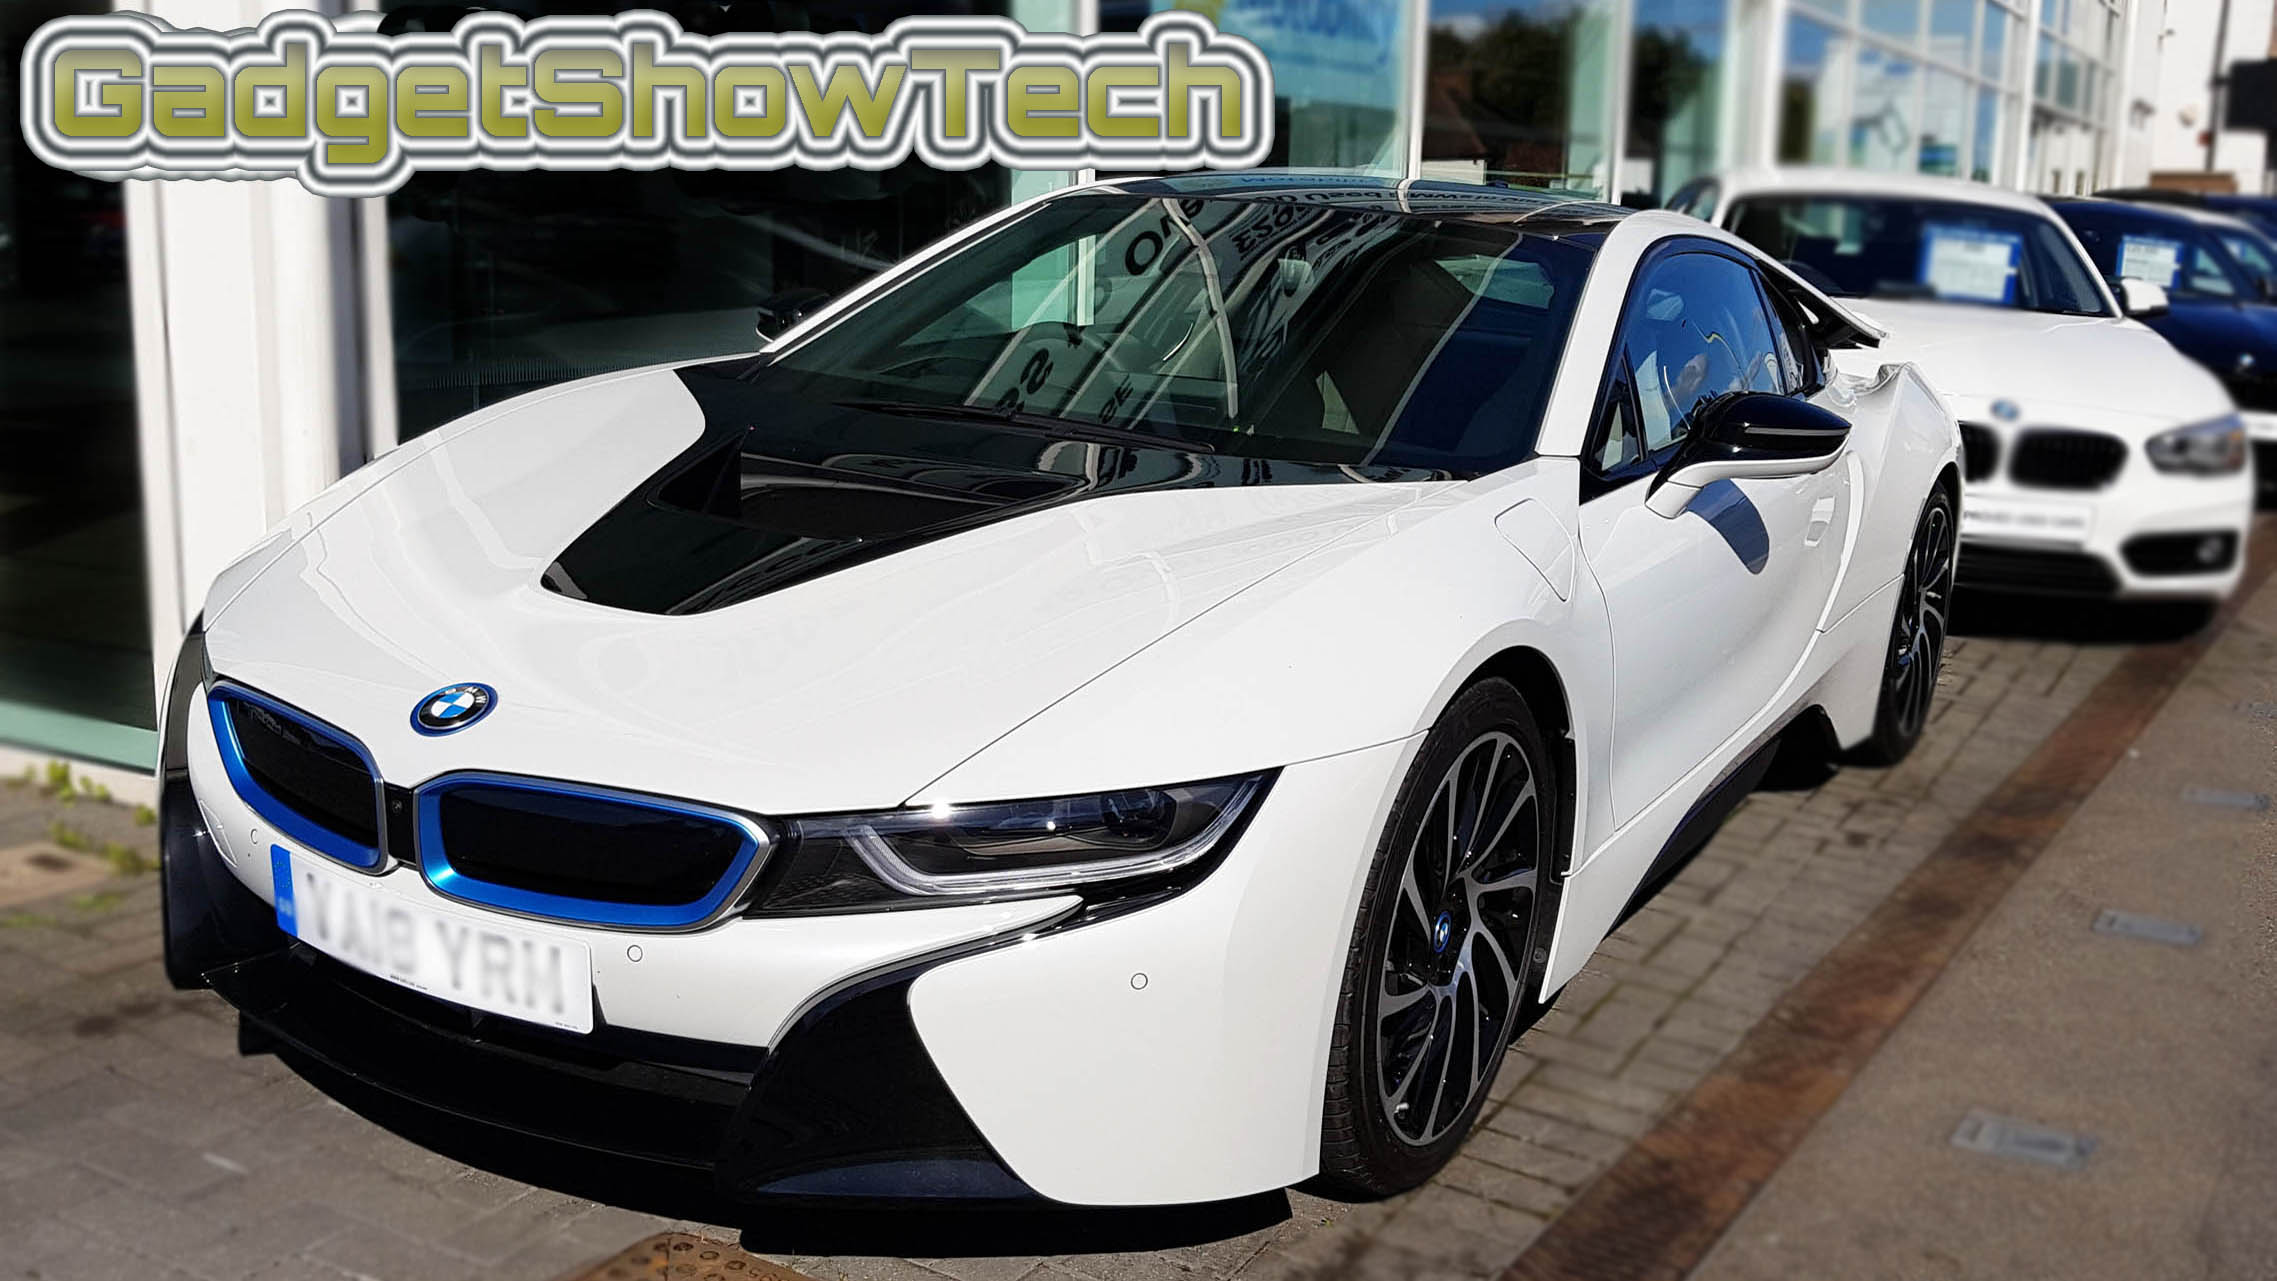 BMW i8 - 0 to 60 mph in 4.5 seconds